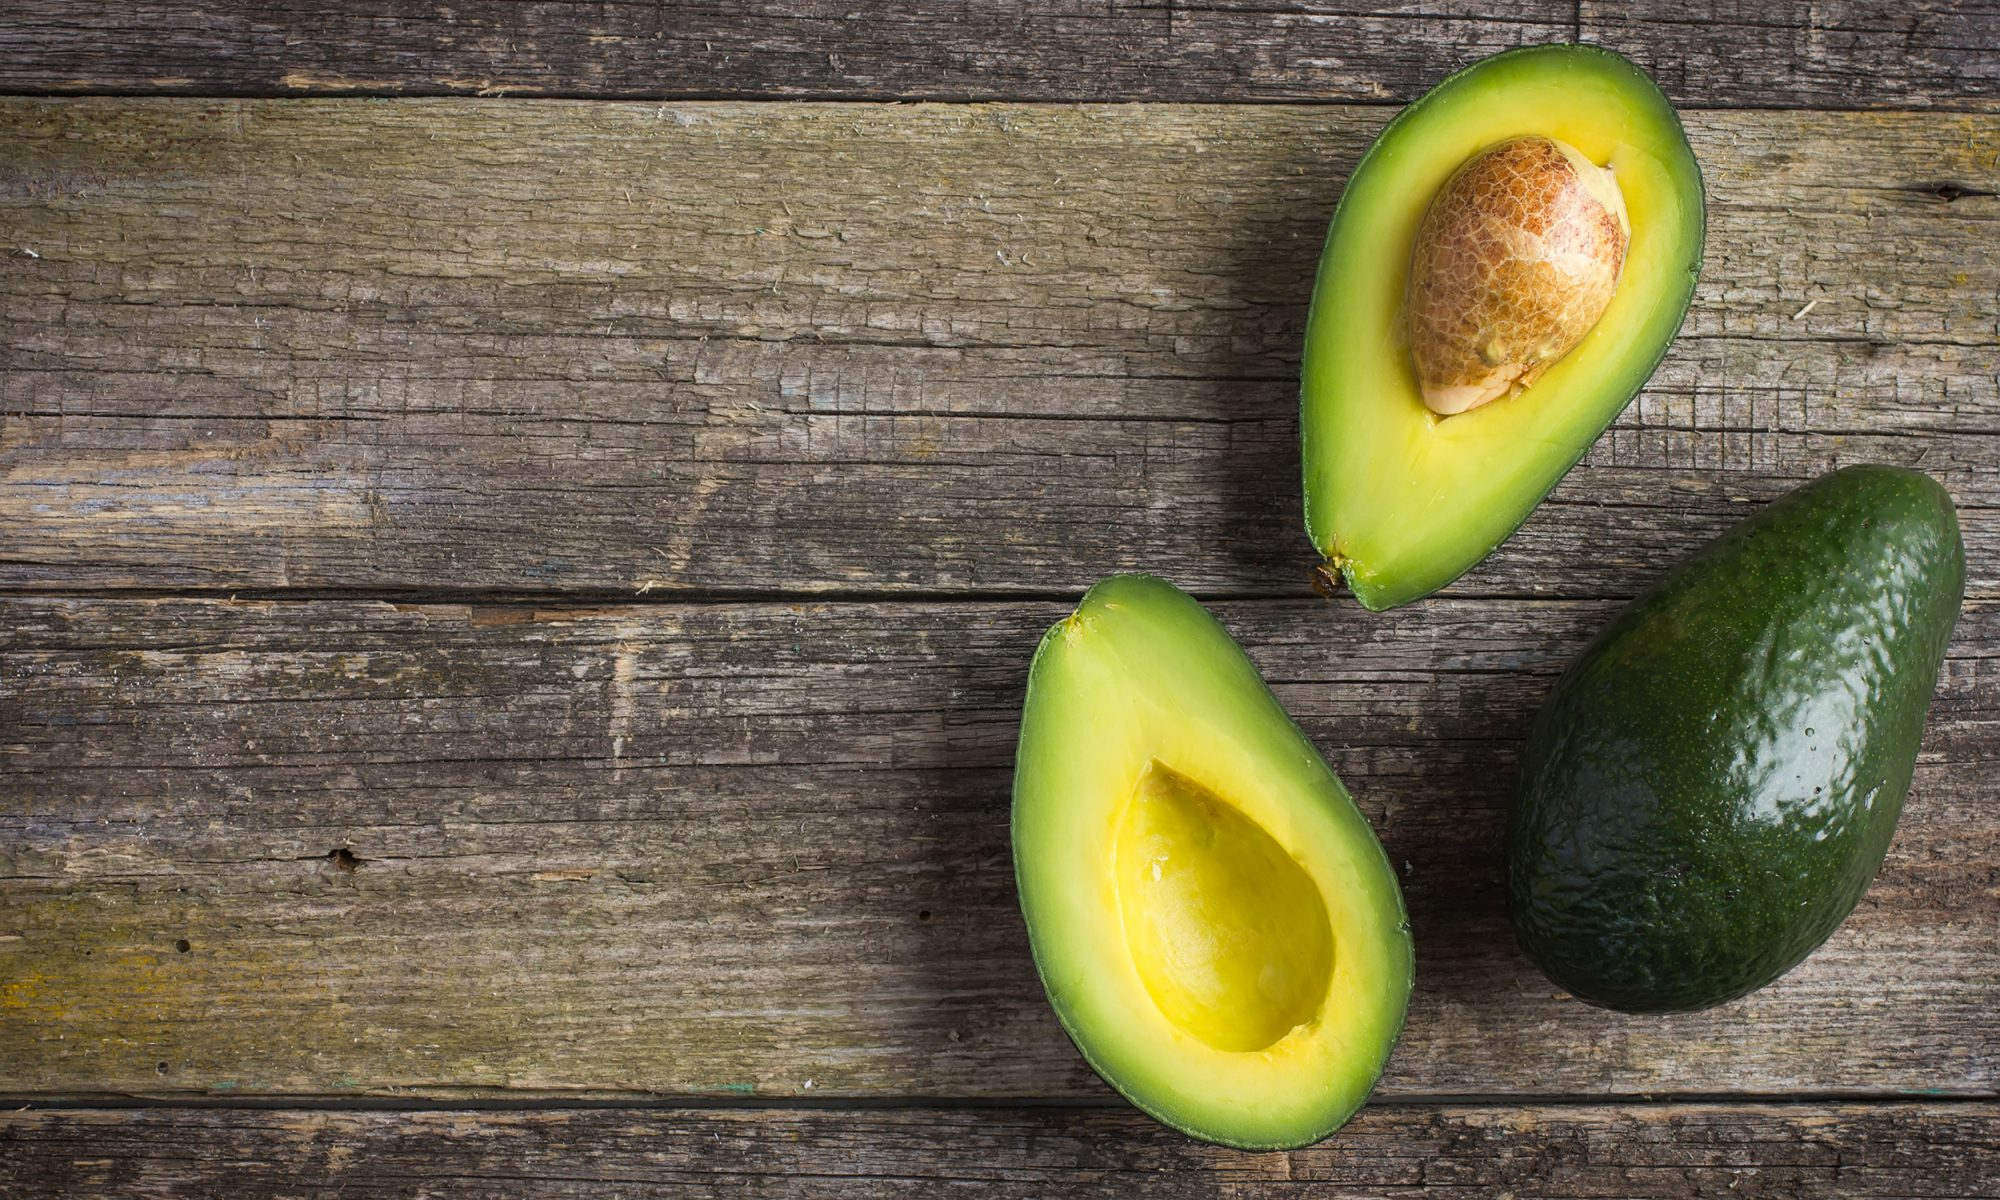 EC: What's the Difference Between Florida and California Avocados?